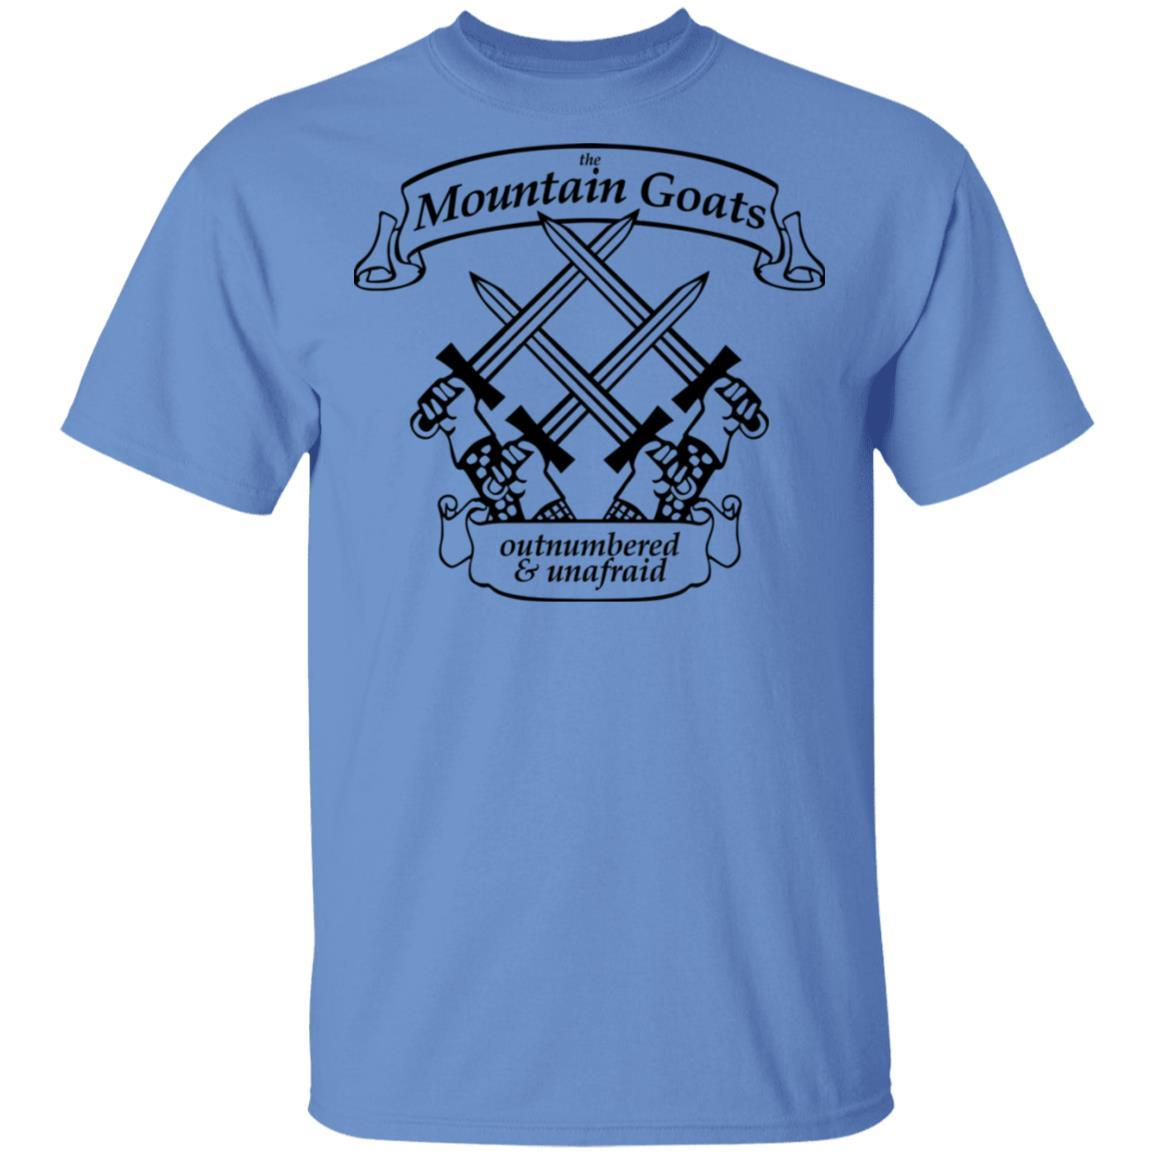 The Mountain Goats Outnumbered And Unafraid T-Shirts, Hoodies 1049-9955-92948169-48160 - Tee Ript